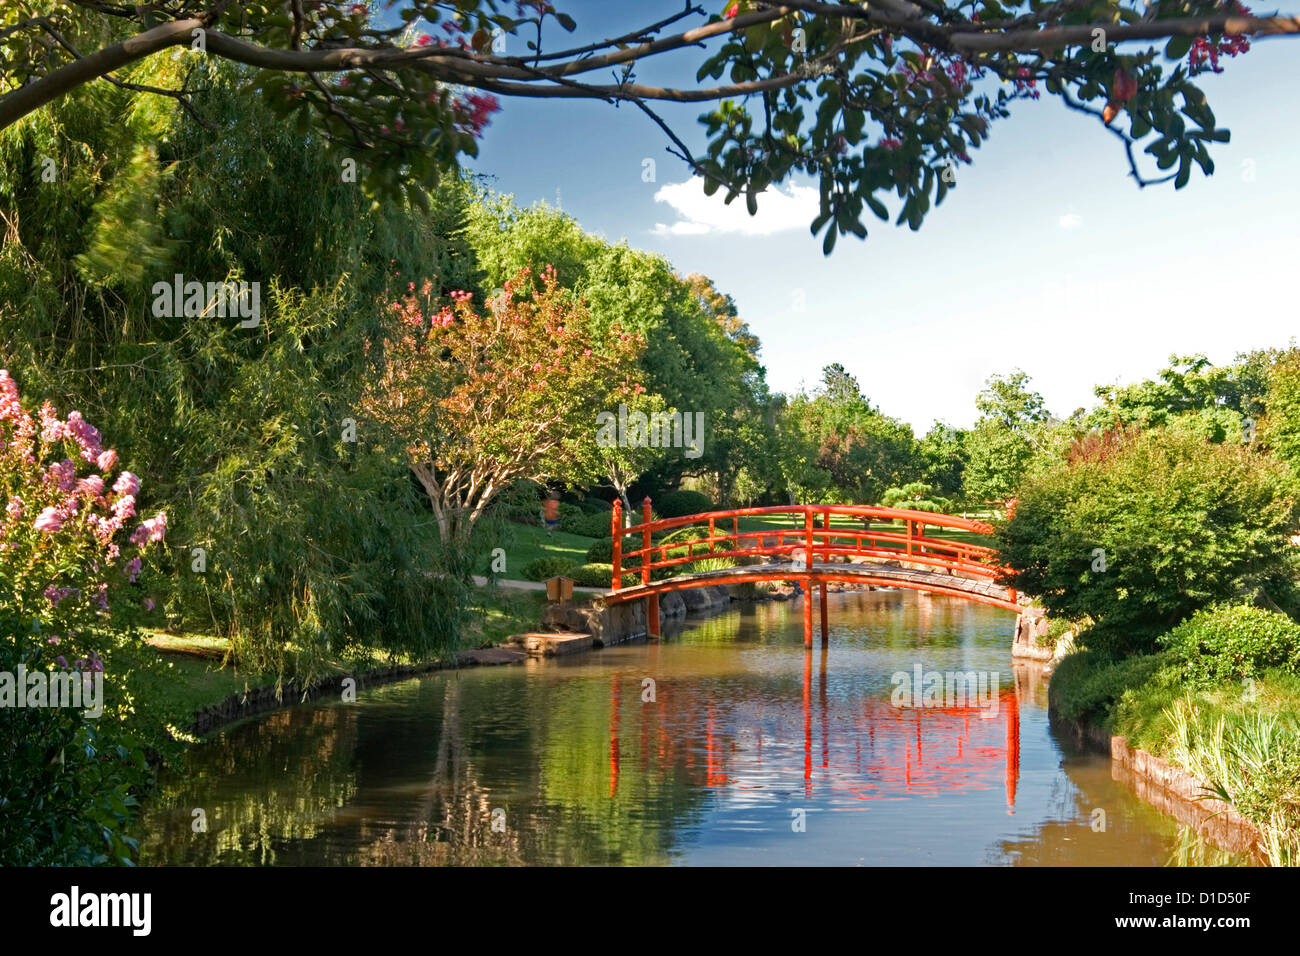 Japanese garden with ornate arched bridge reflected in blue water of ...